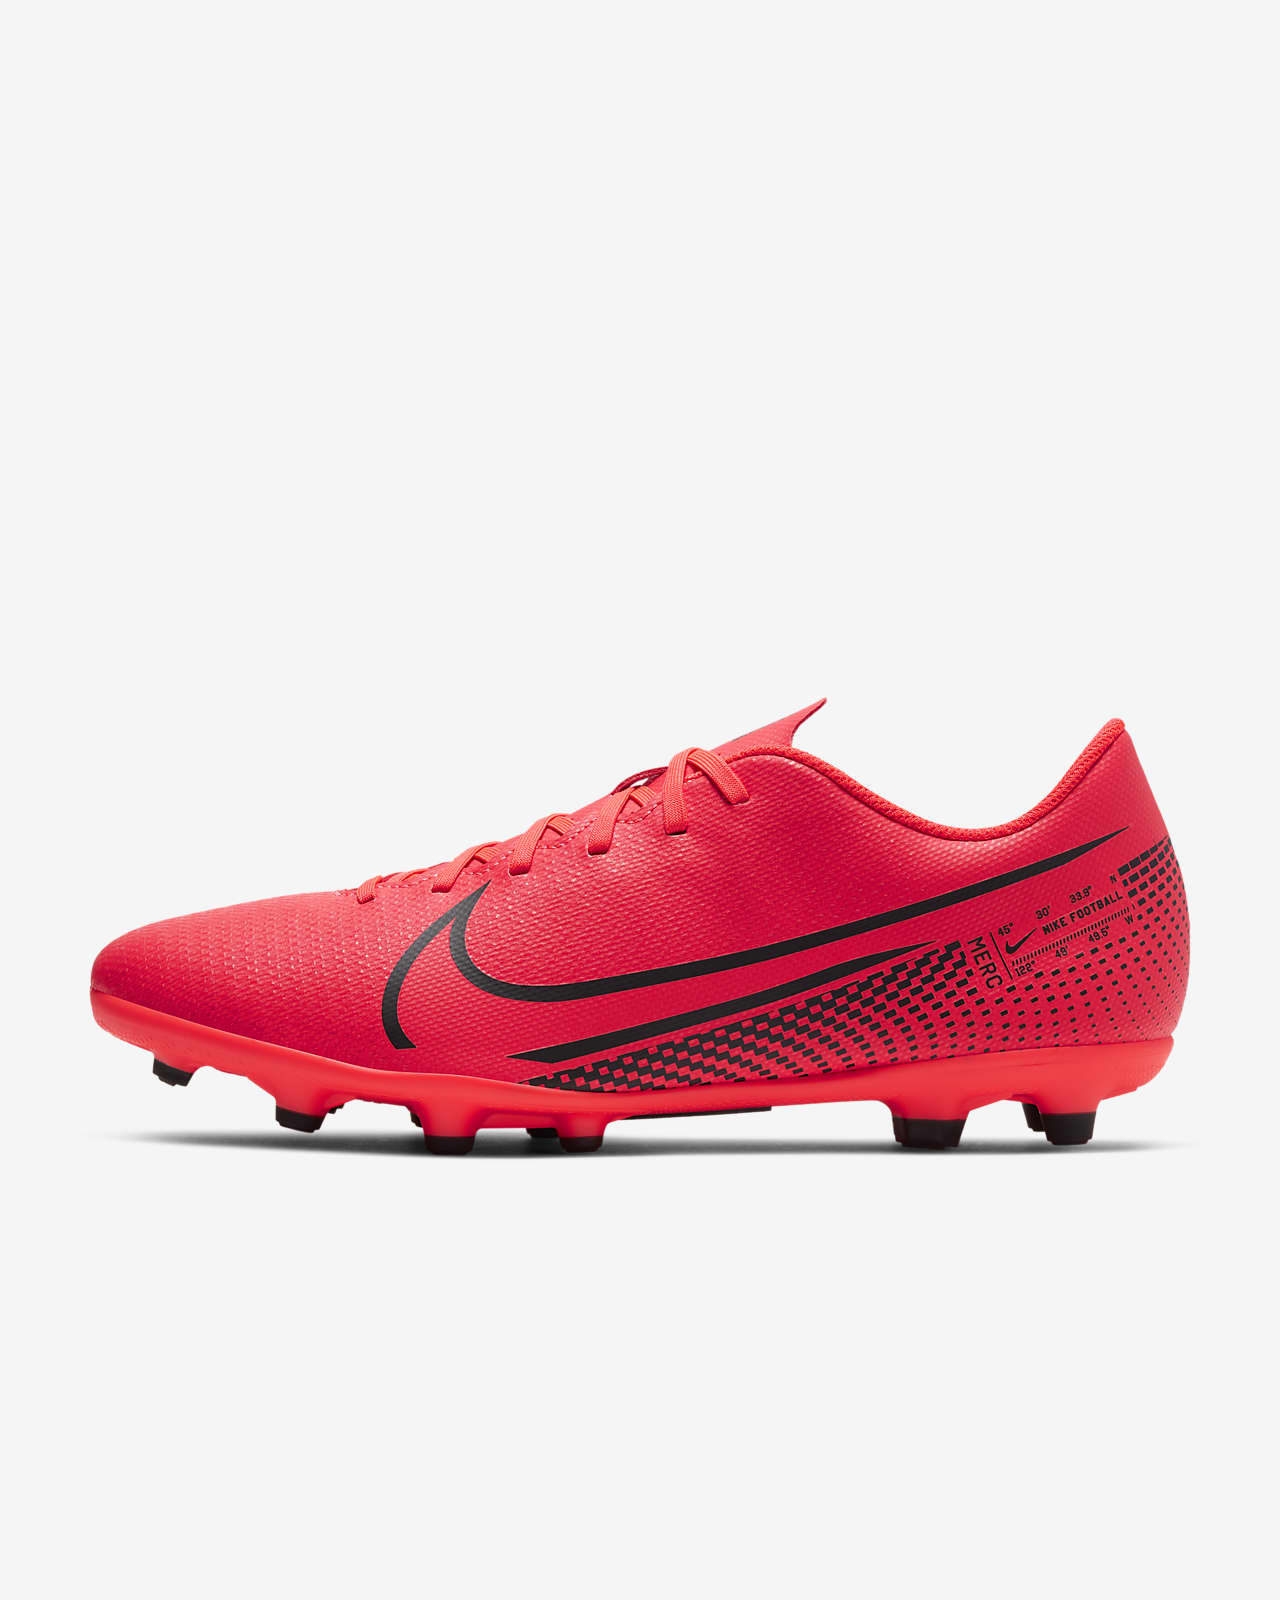 Nike Mercurial Vapor 13 Club MG Multi-Ground Football Boot